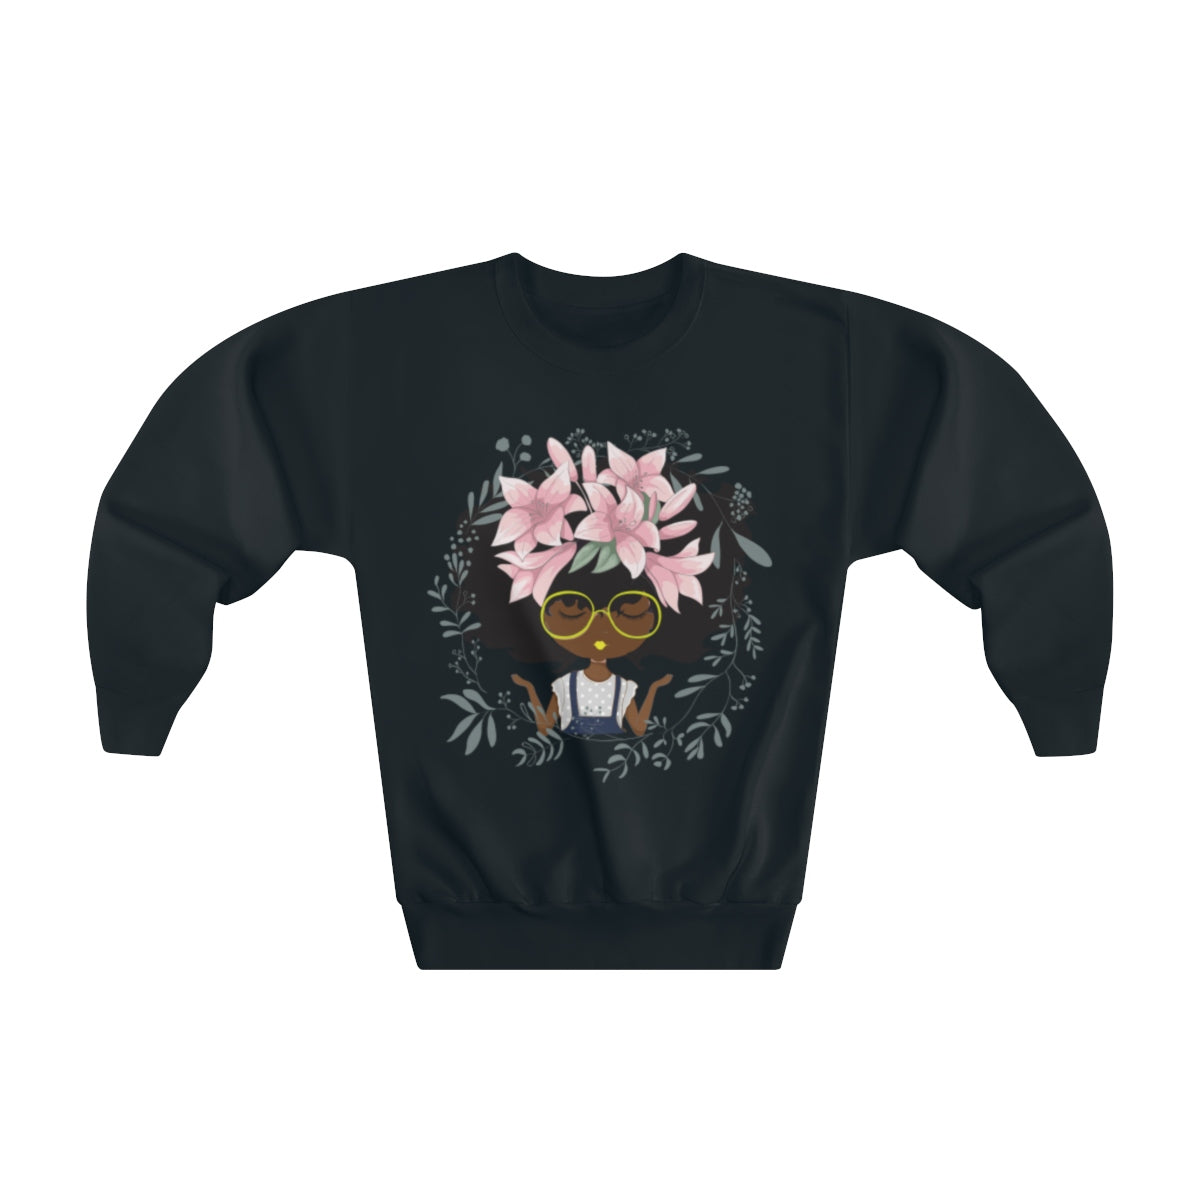 Lily Youth Sweatshirts